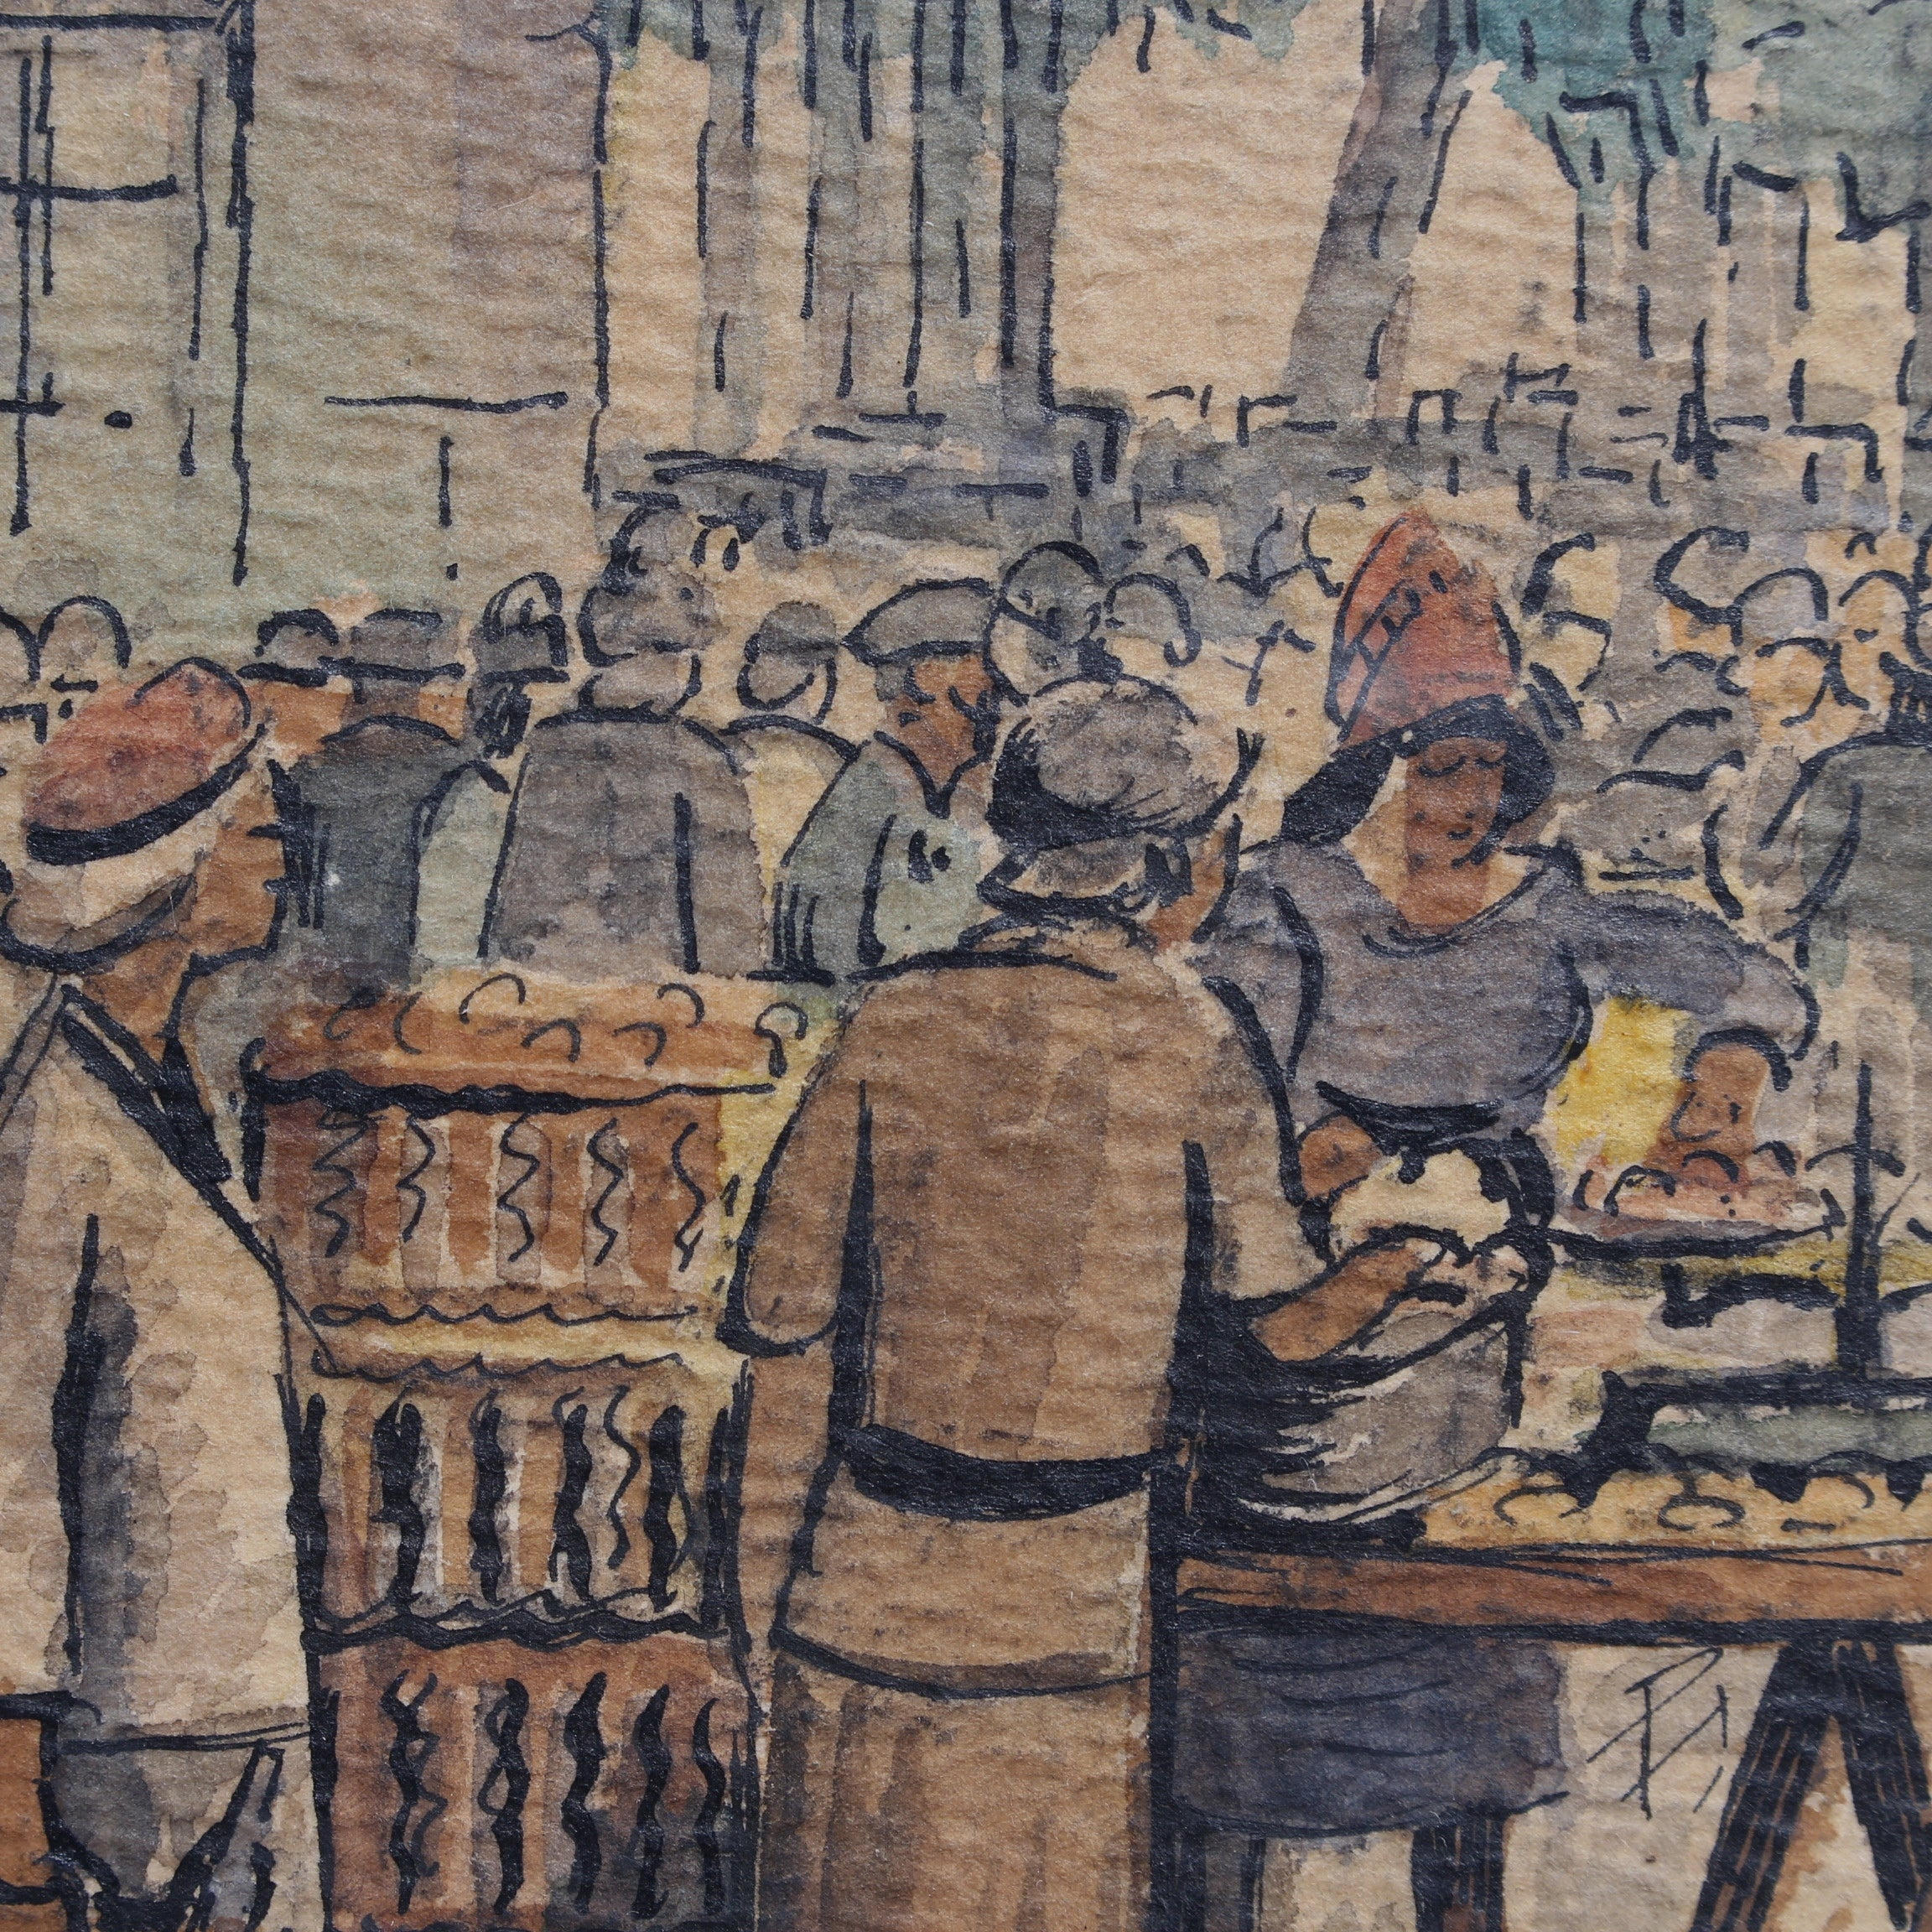 'French Market Day' by Charles Orens Denizard (1945)